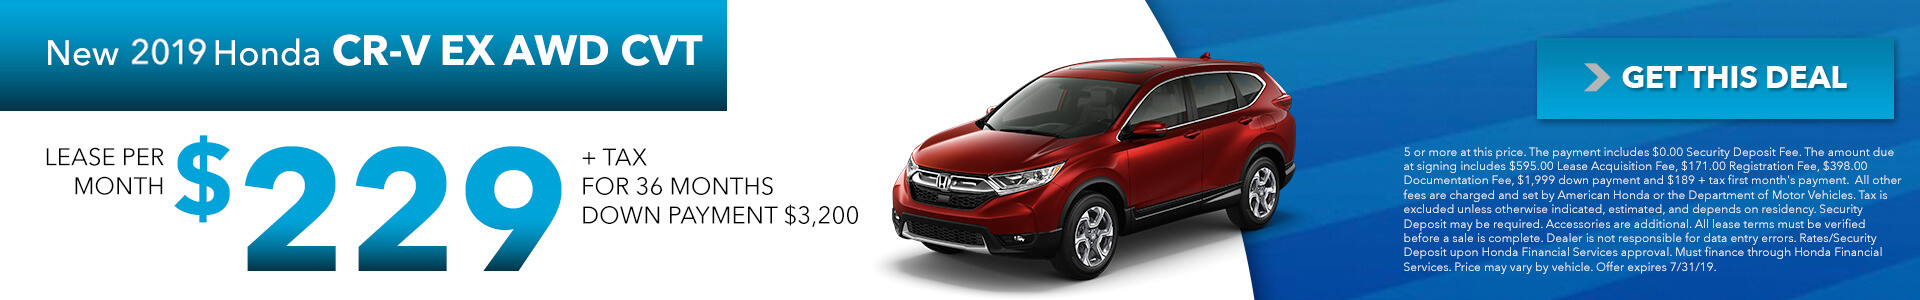 2018 Honda CR-V EX Lease for $229